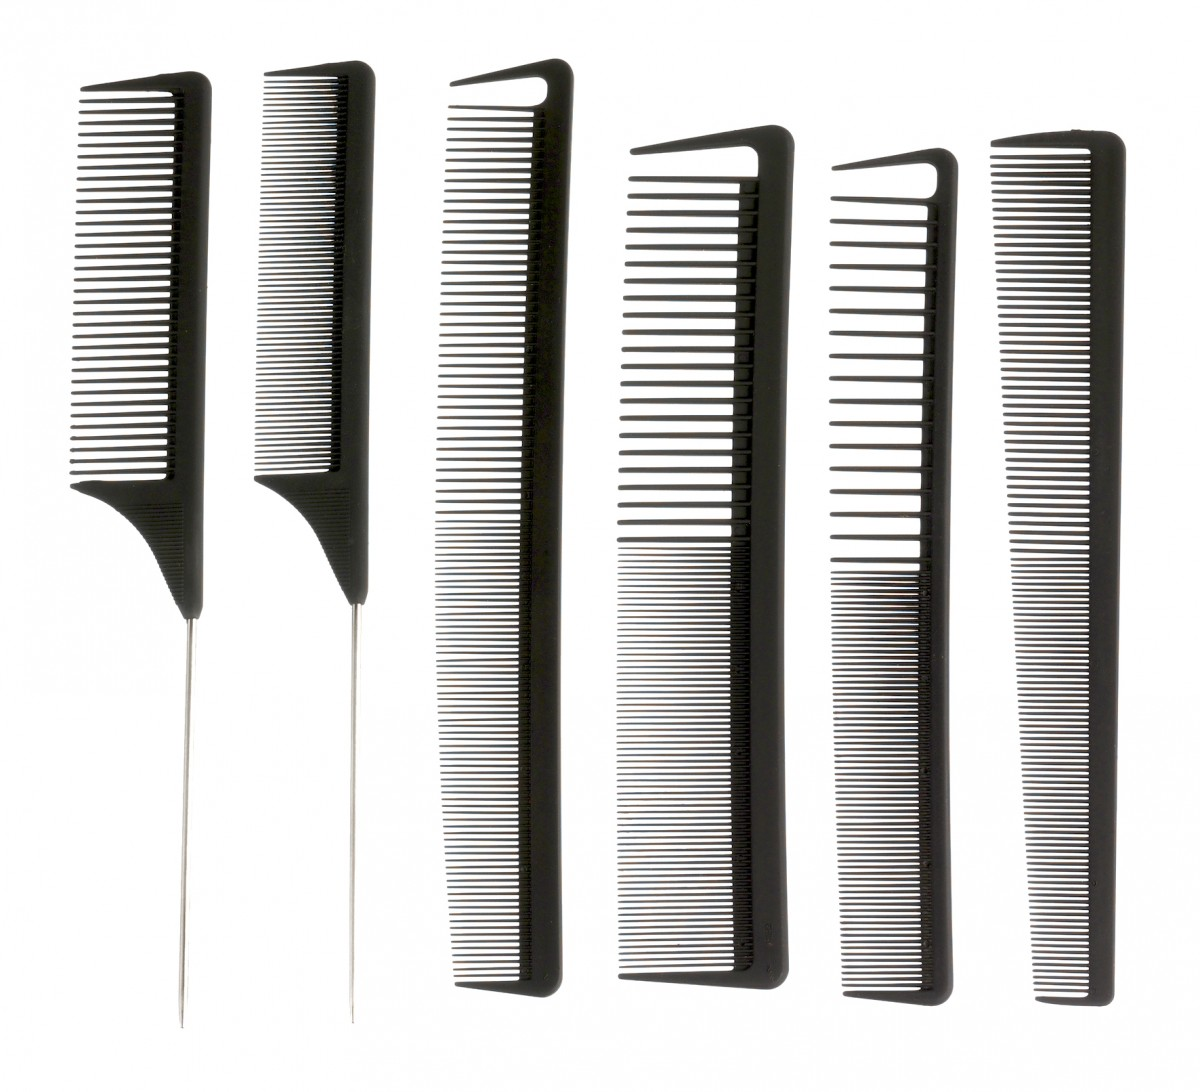 Set of 6 professional combs